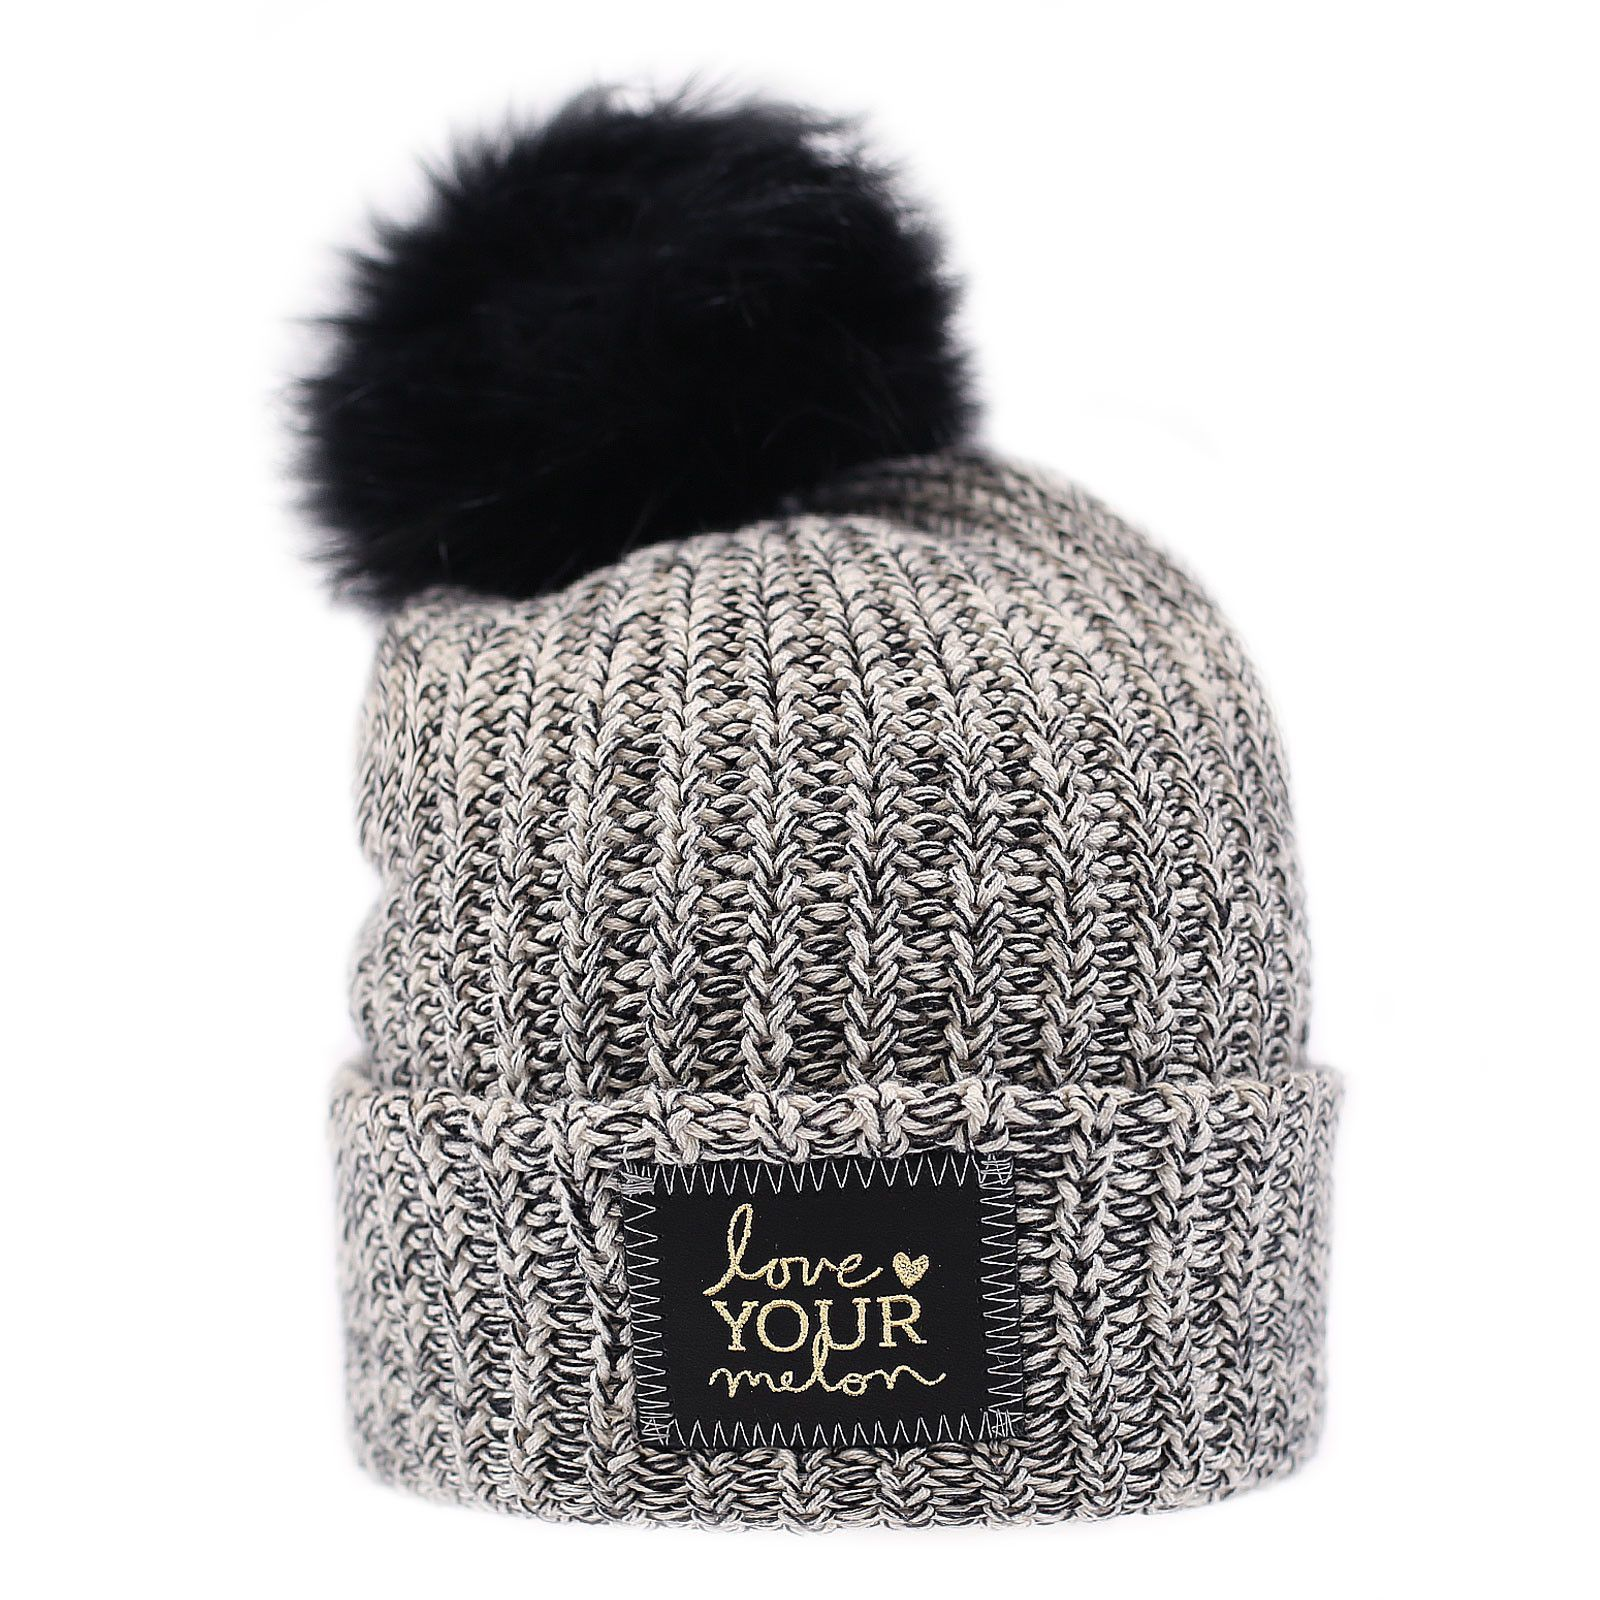 6e5daf78f14 Black Speckled Gold Foil Cuffed Pom Beanie (Black Pom) – Love Your Melon